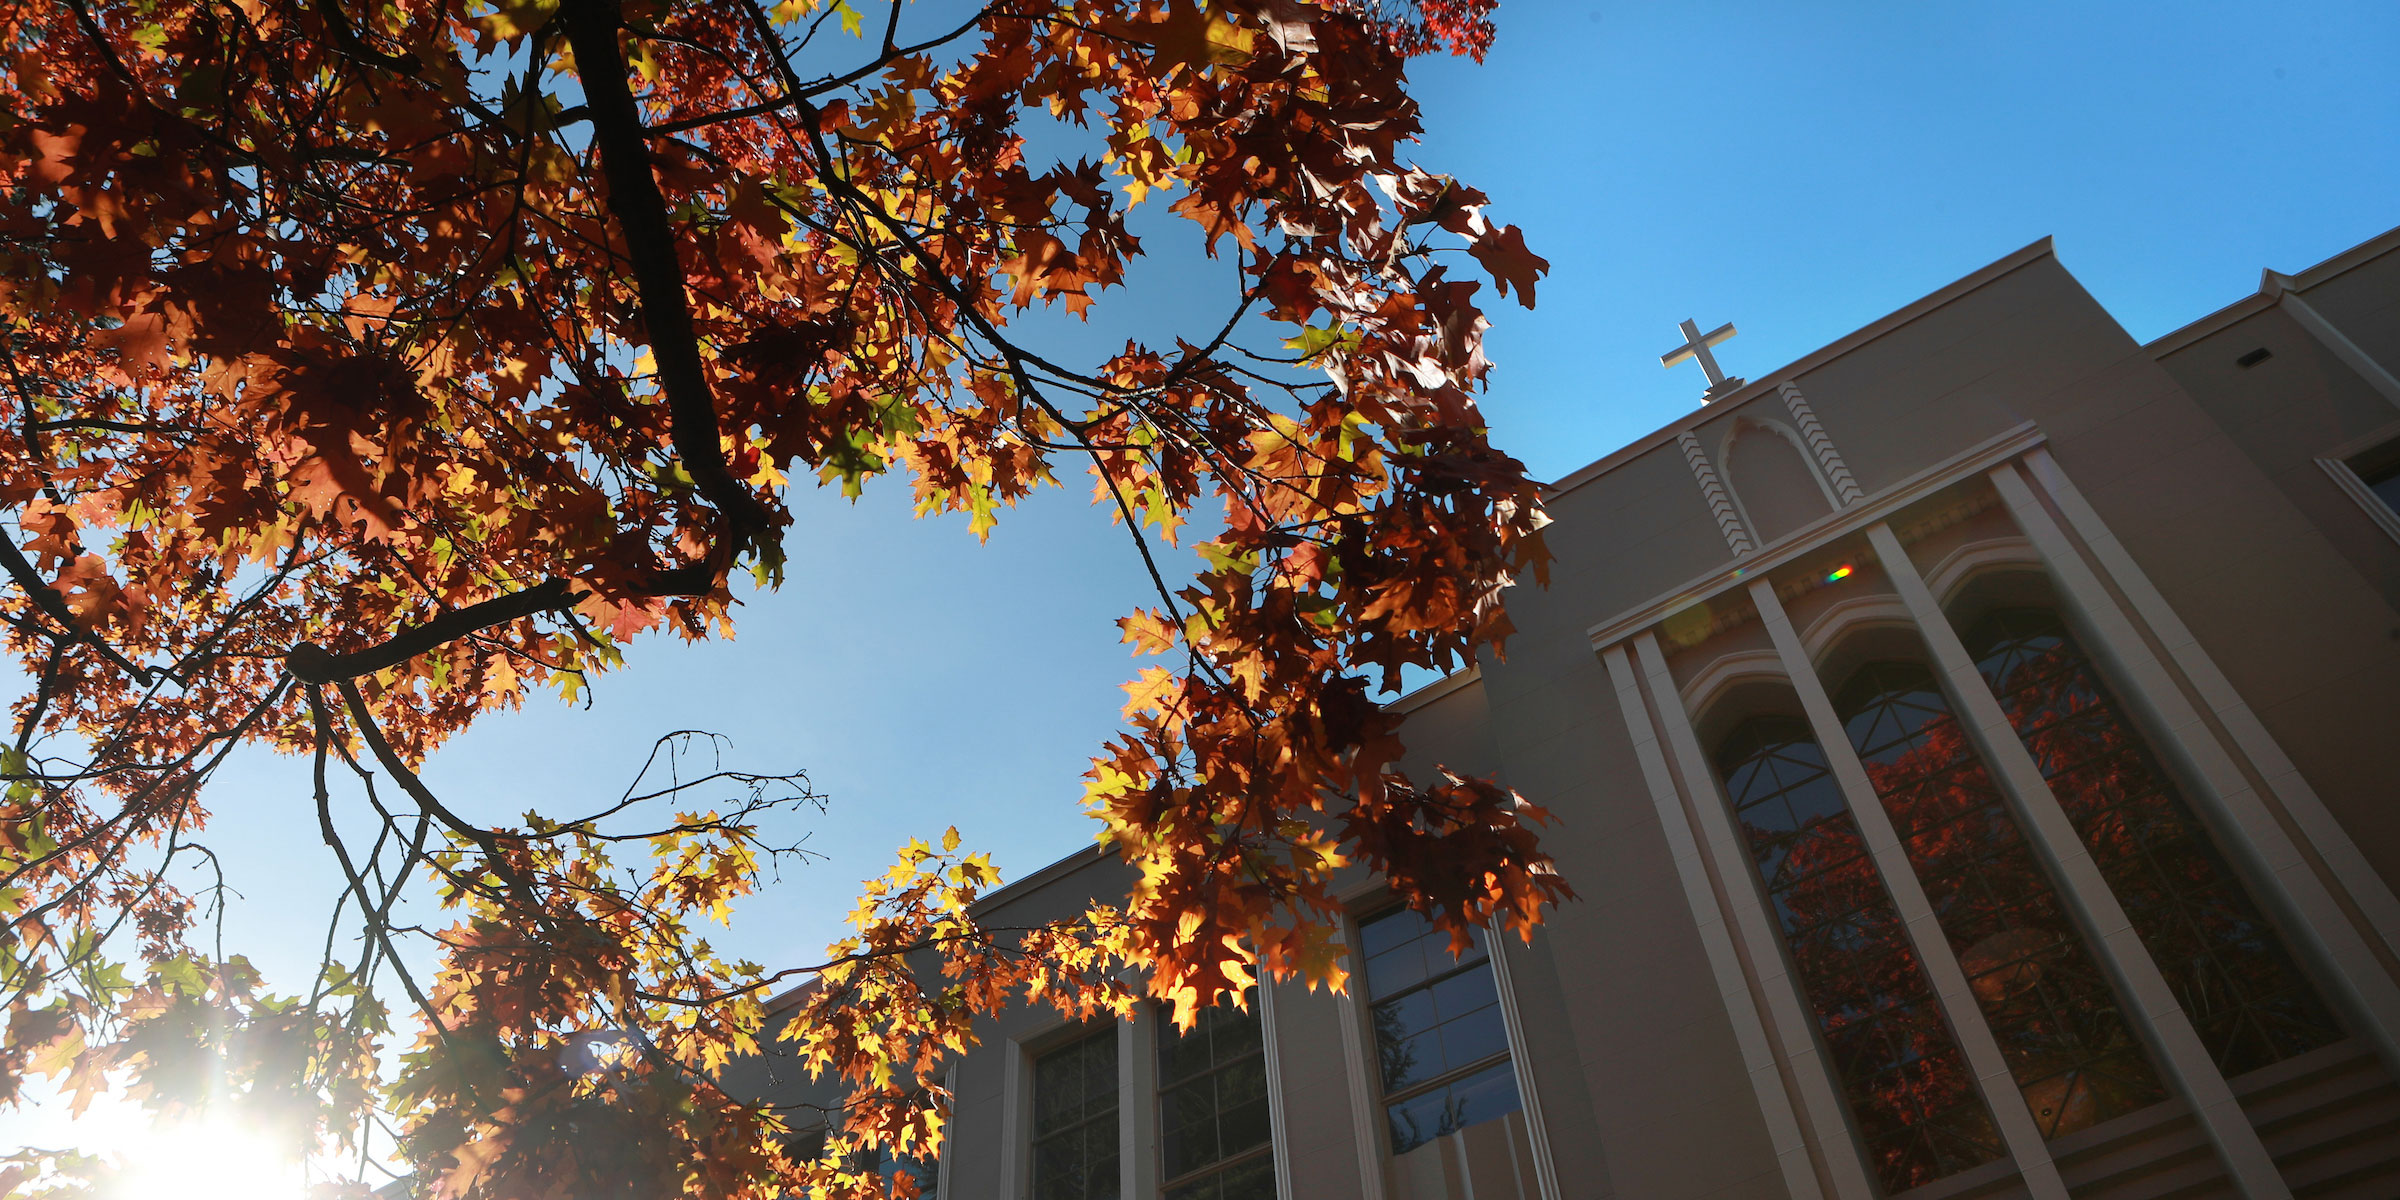 looking upwards at the entrance to the Administration building and colorful fall trees